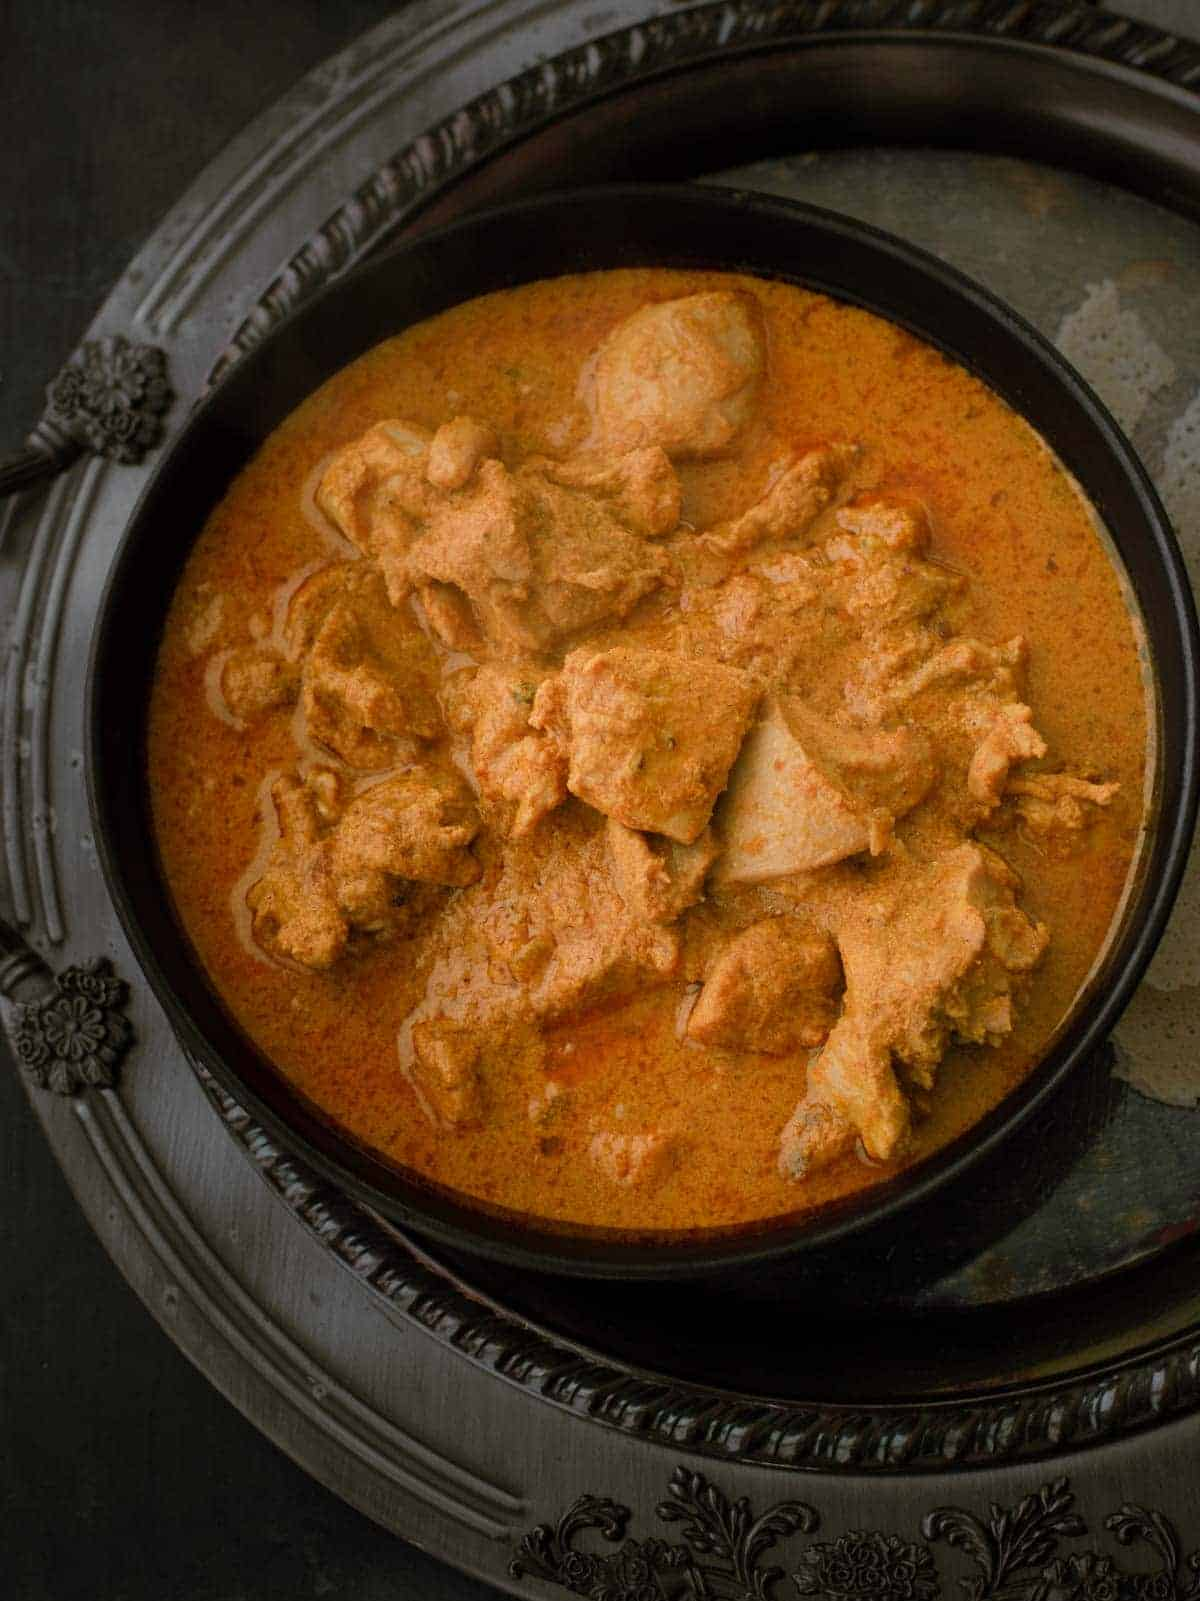 Mangalorean chicken curry or Kori Gassi is a chicken curry like no other. Signature dish of the folks hailing from bunt community, this fiery red chicken curry combines the mild sweetness of coconut with a medley of spices to create a complex flavored curry that is a treat to your senses.